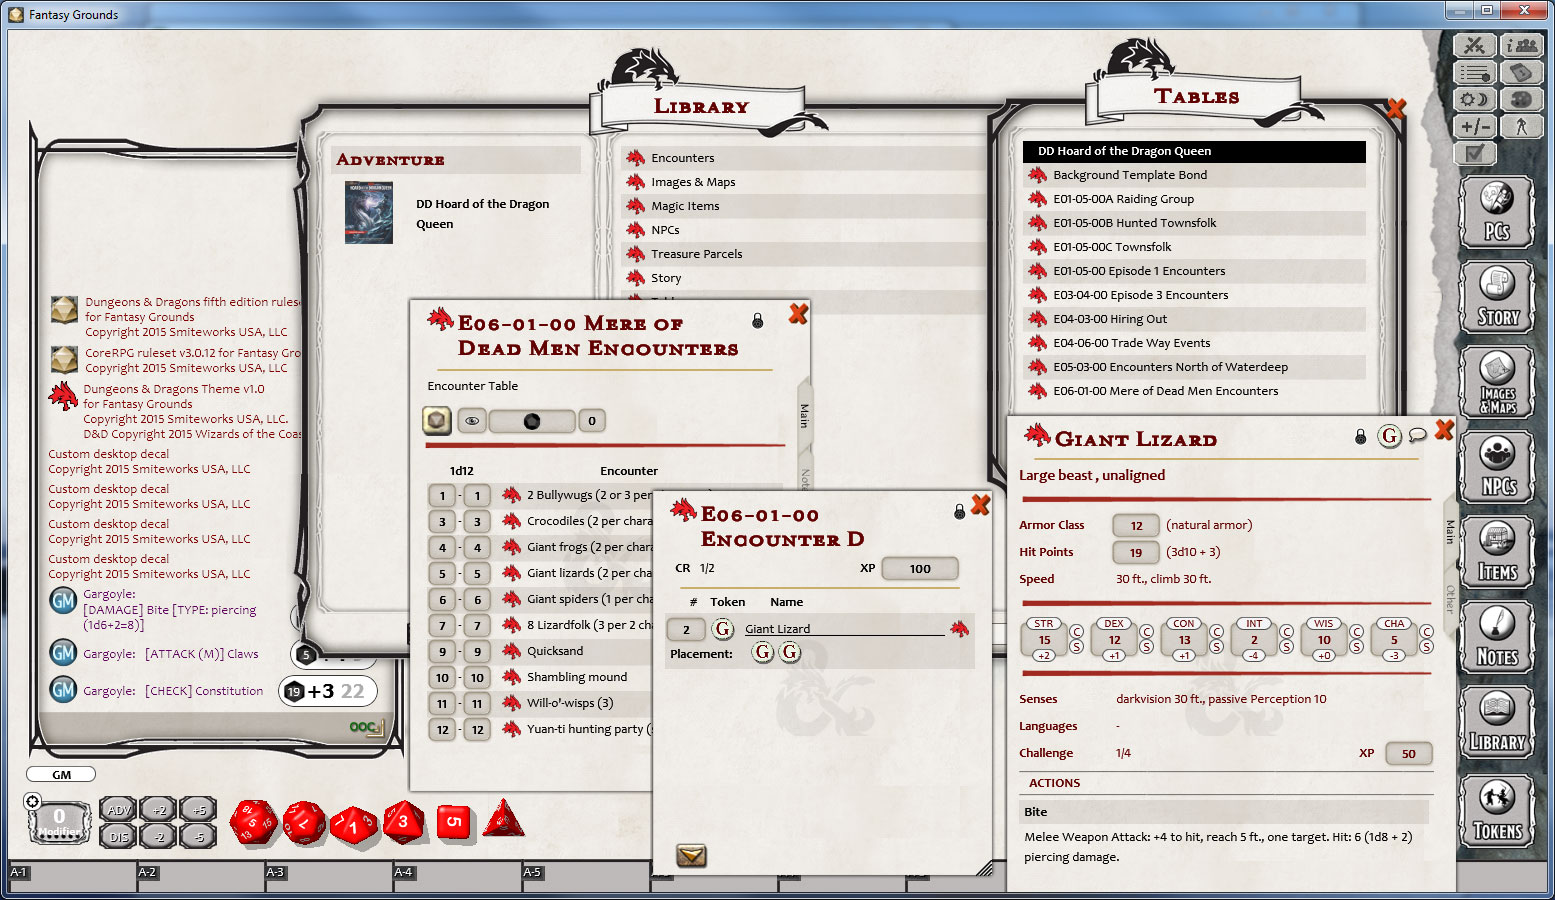 Fantasy Grounds - D&D Hoard of the Dragon Queen screenshot